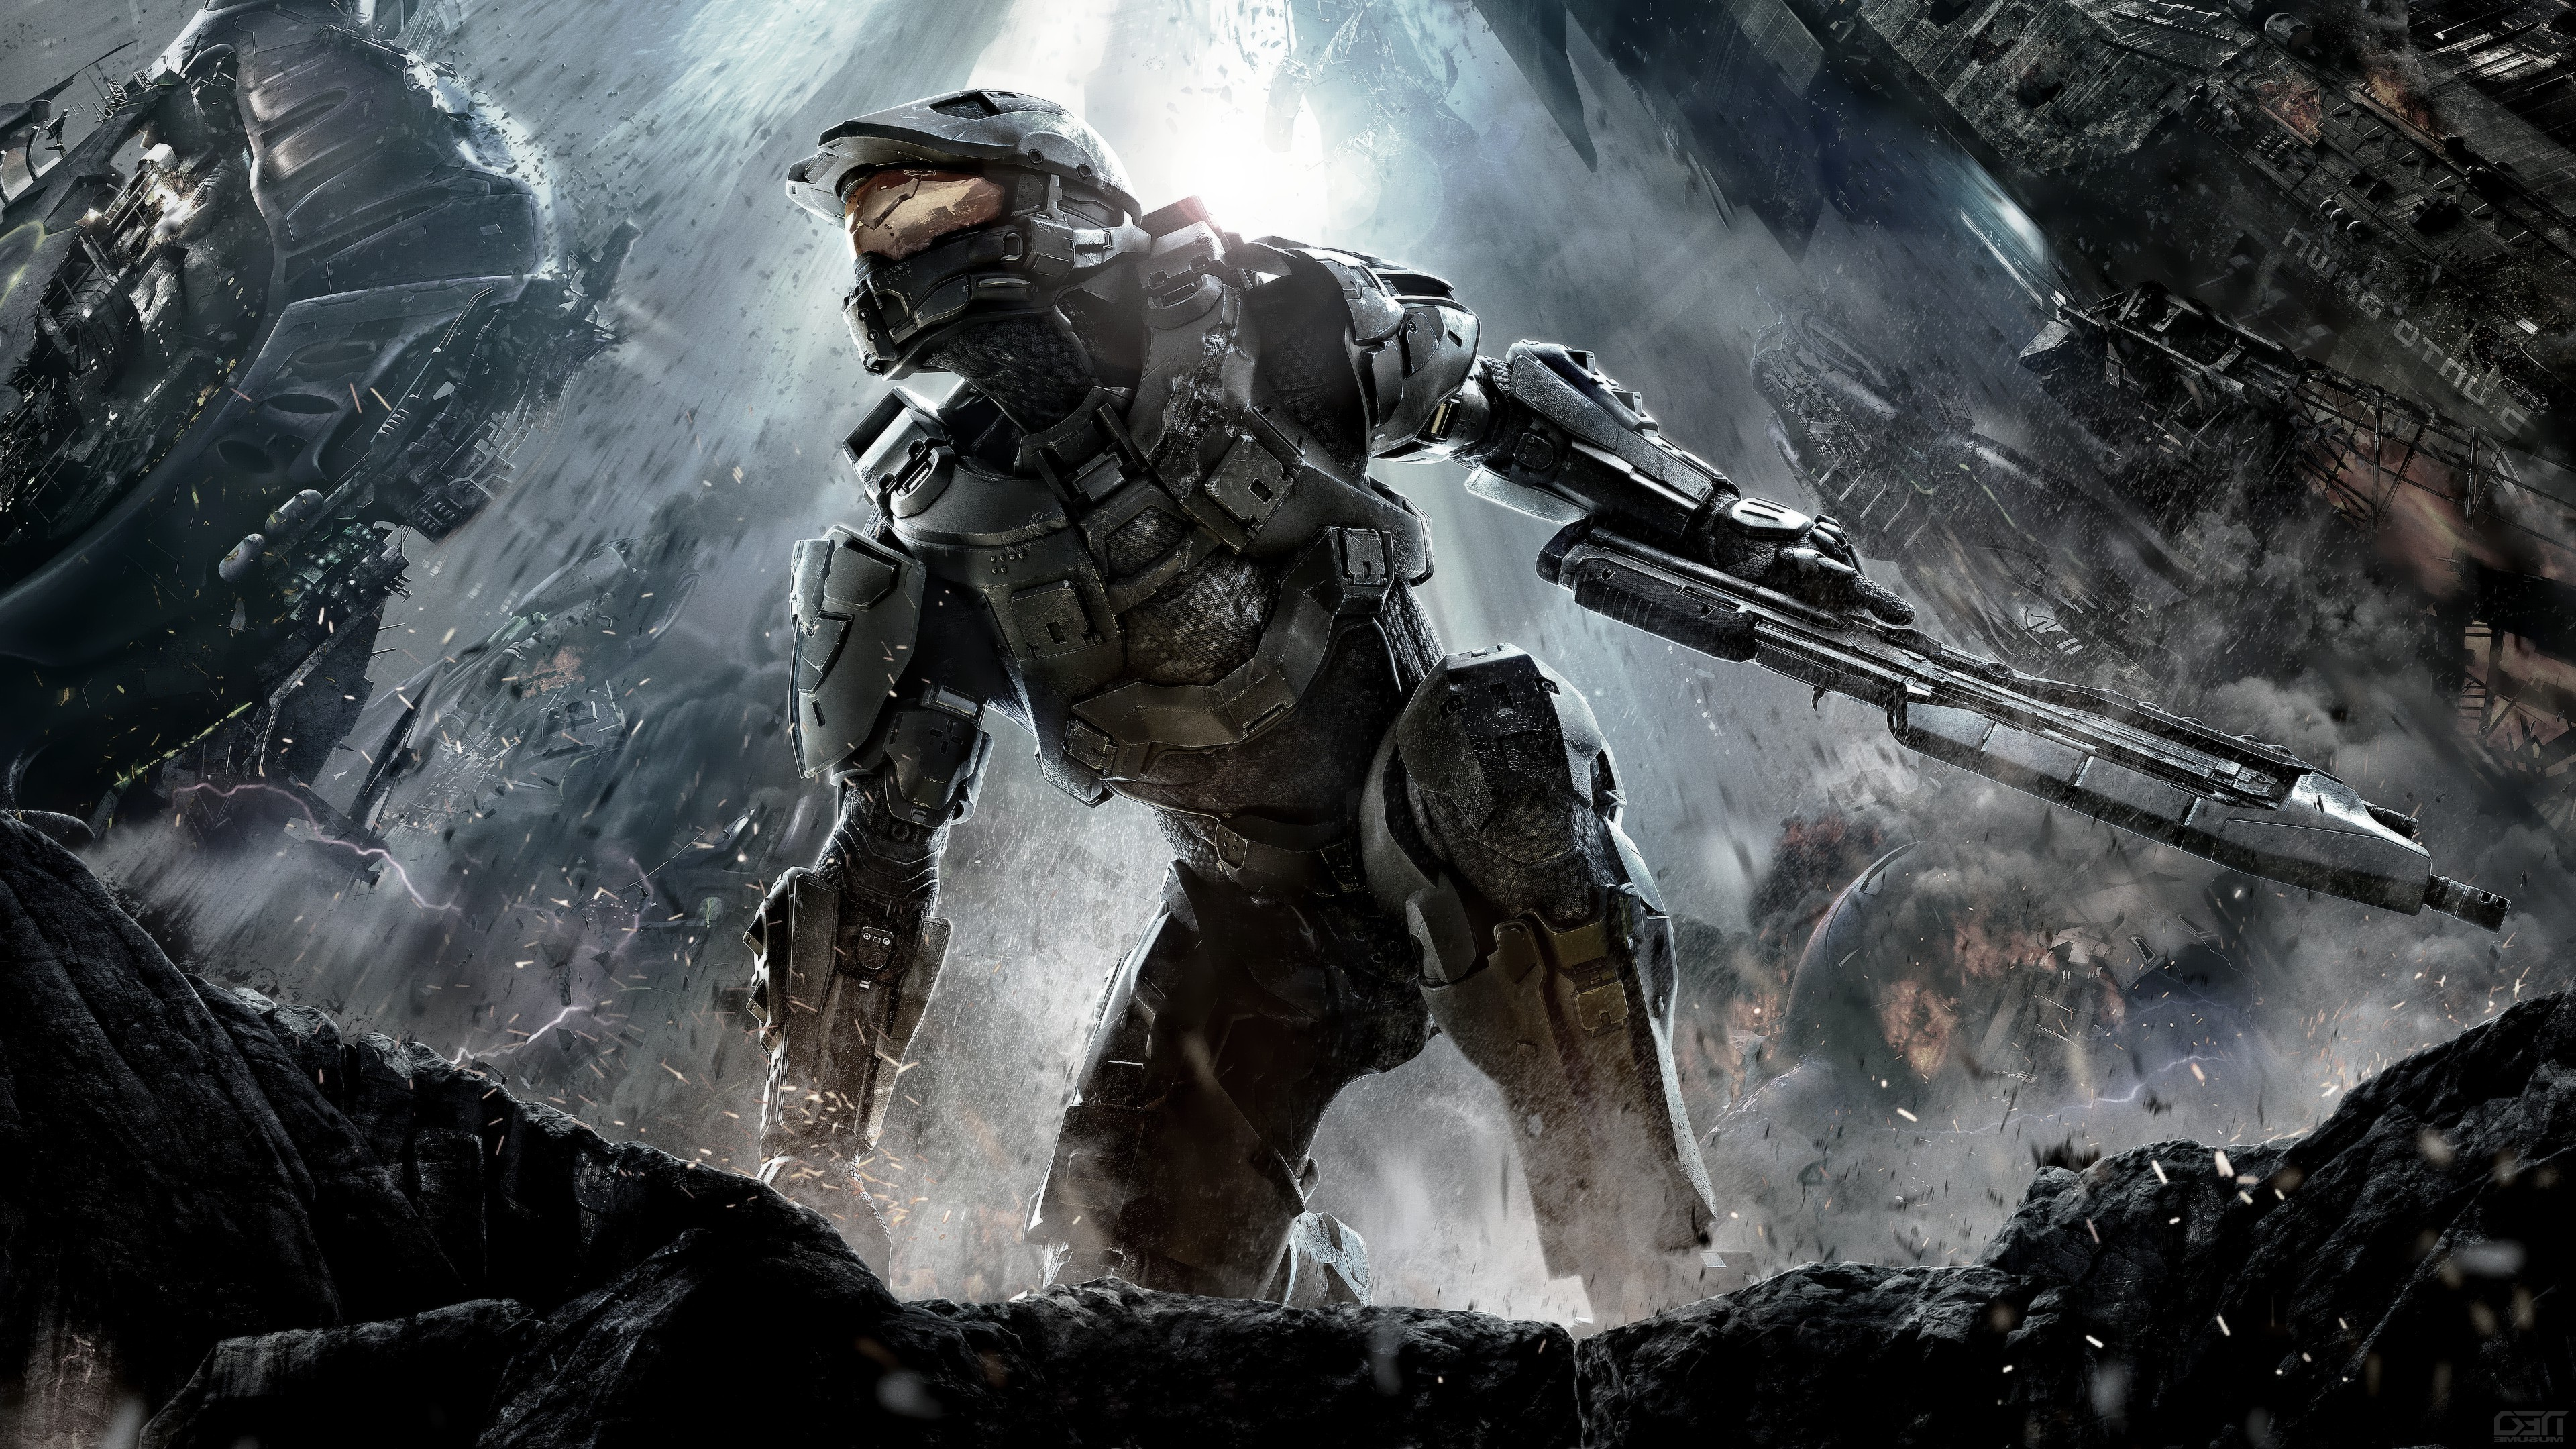 3840x2160 Halo Guardians Team Chief Wallpapers HD Wallpapers 2420 1778 Source · Master  Chief Wallpaper HD